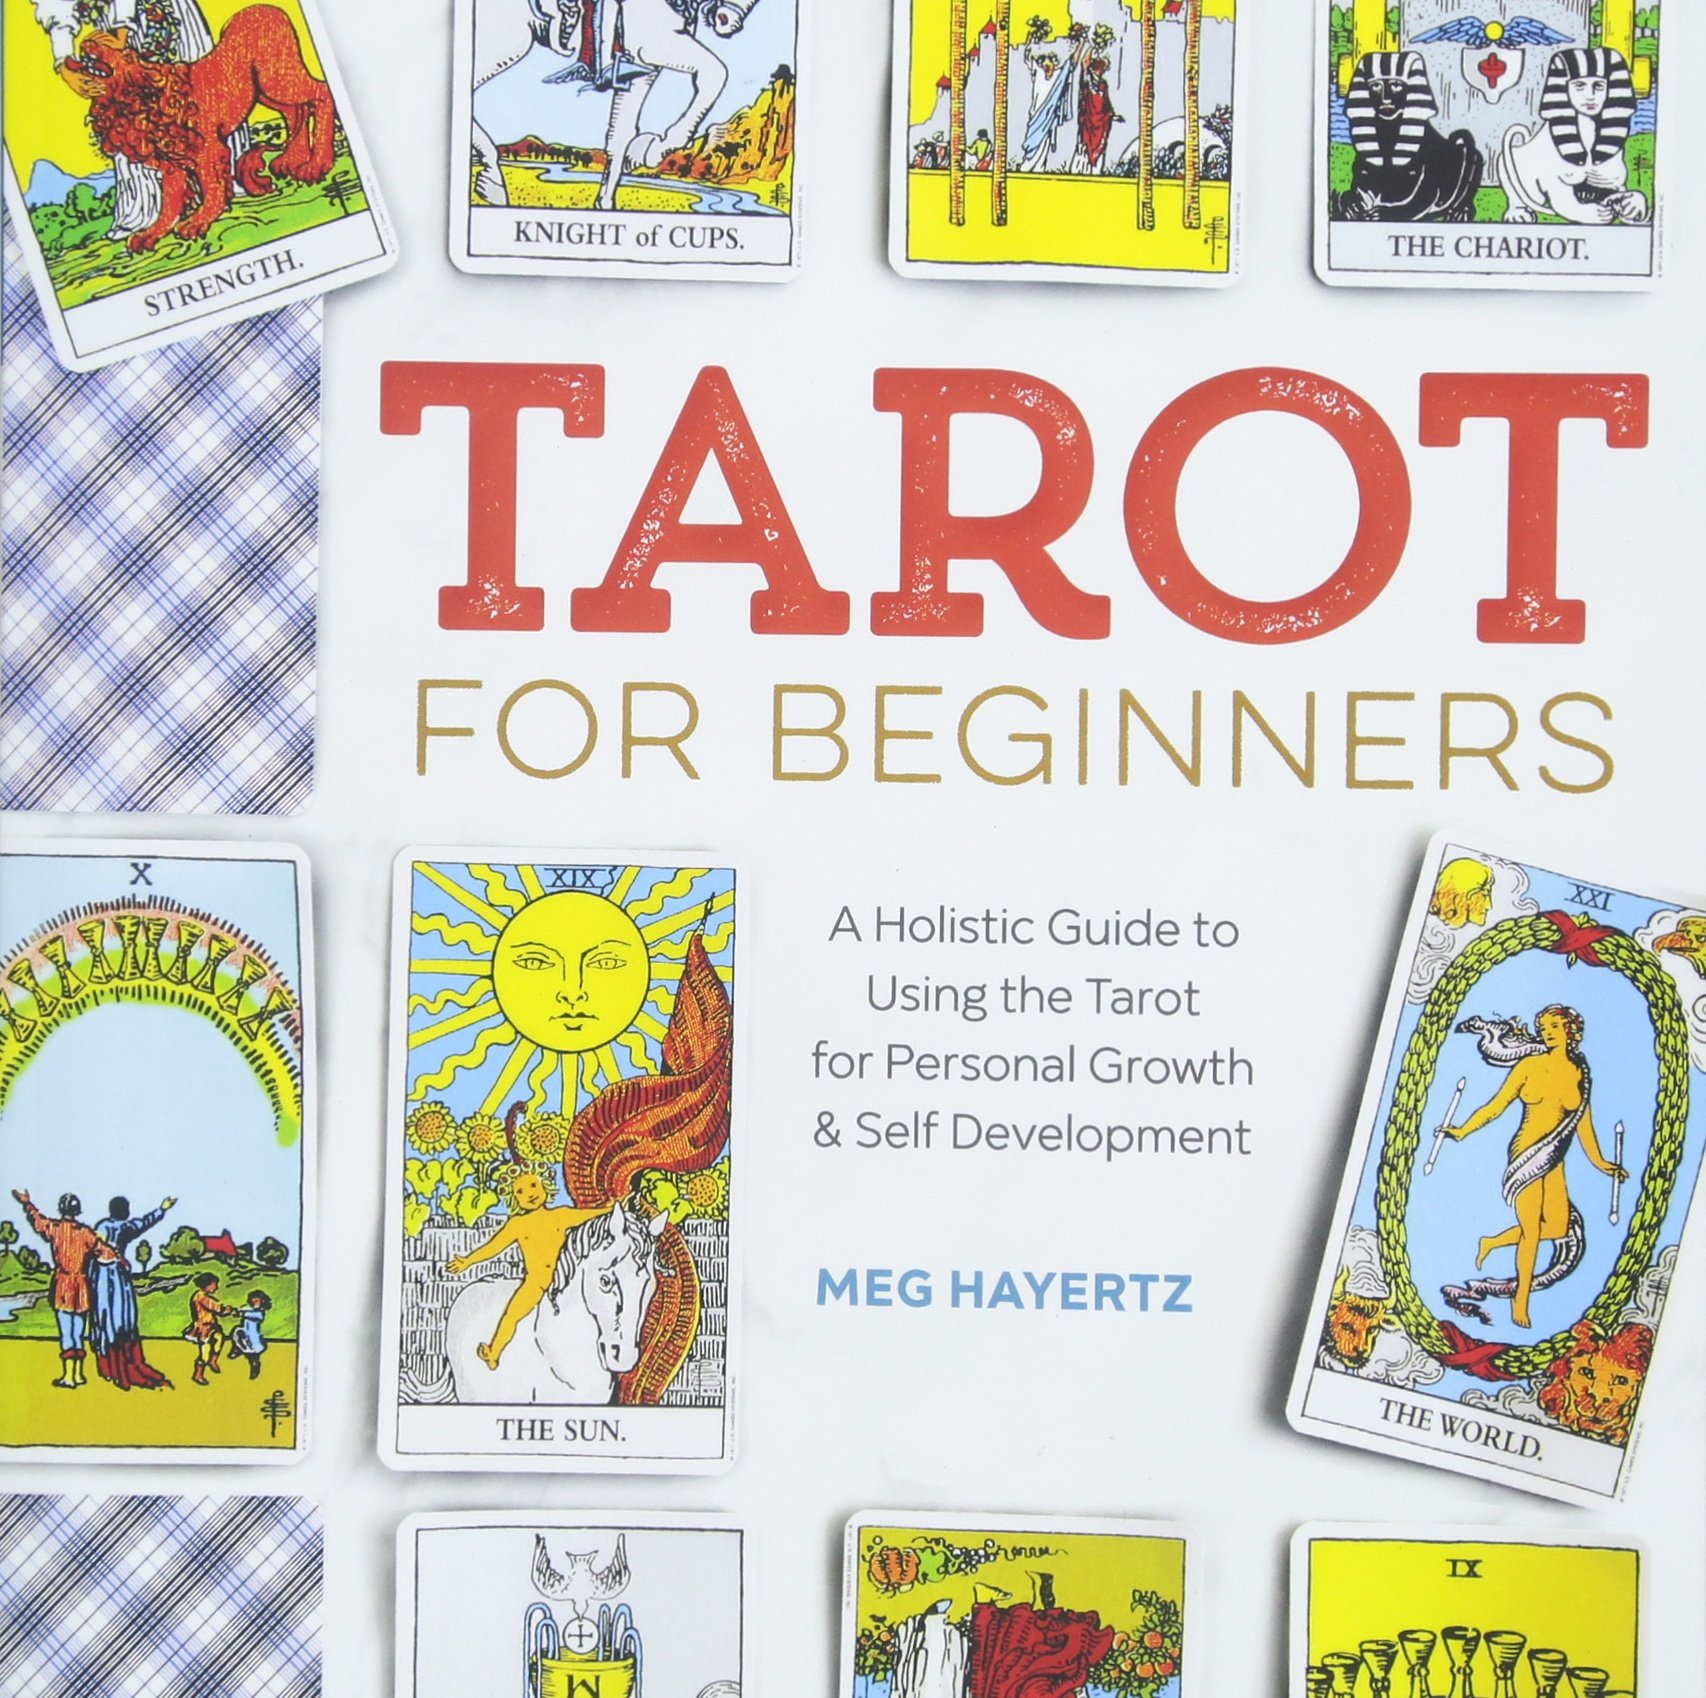 Tarot for Beginners: A Holistic Guide to Using the Tarot for